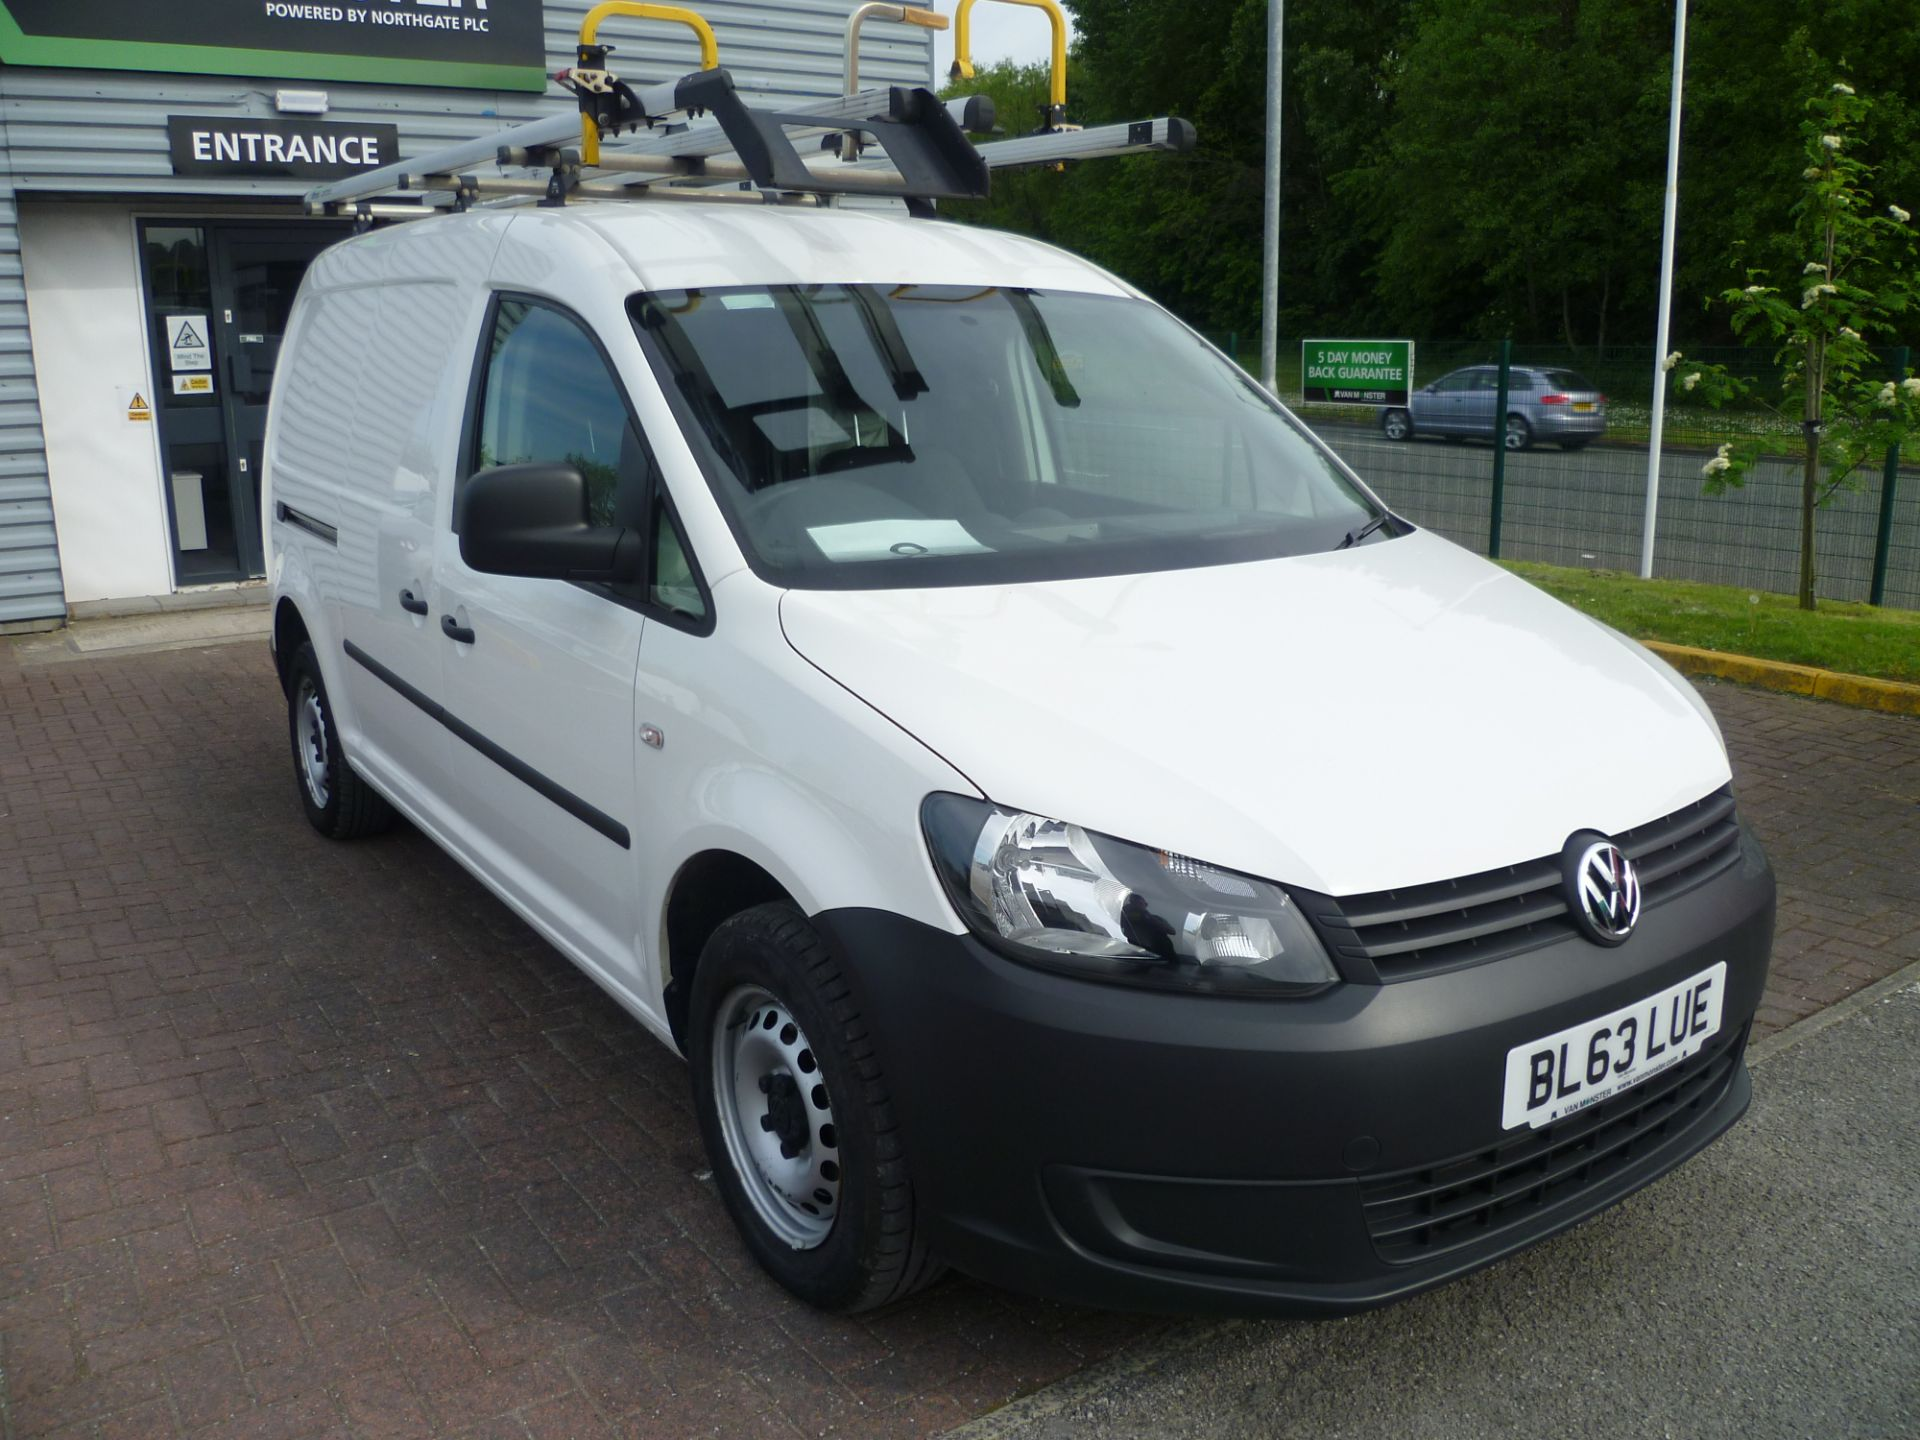 2014 Volkswagen Caddy 1.6 BLUEMOTION 102PS STARTLINE EURO 5 (BL63LUE)